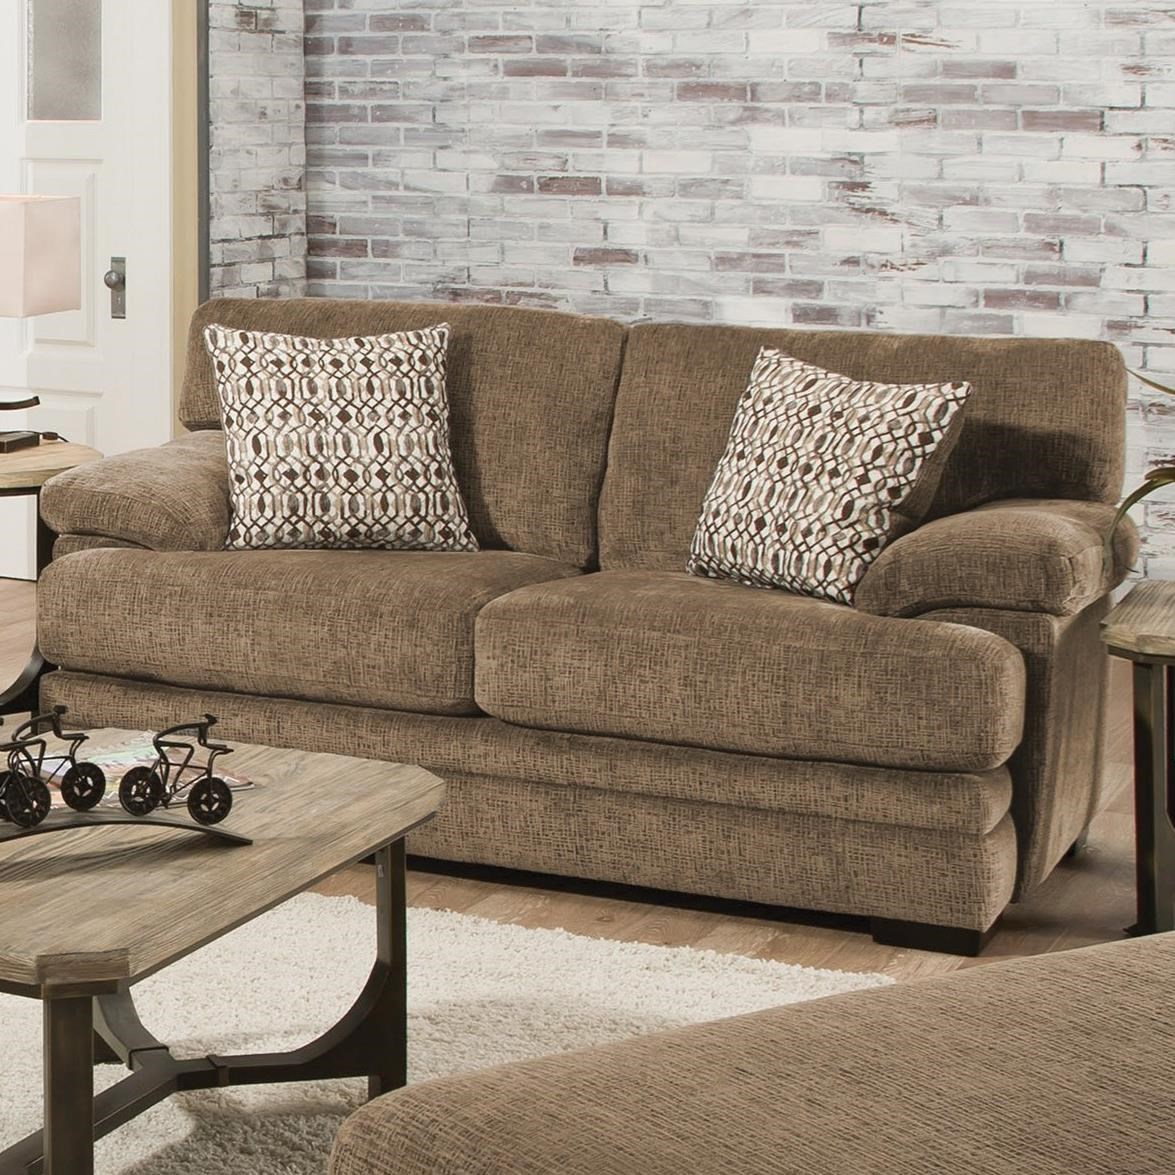 Albany 8662 Loveseat - Item Number: 8662-10-GENS-24718